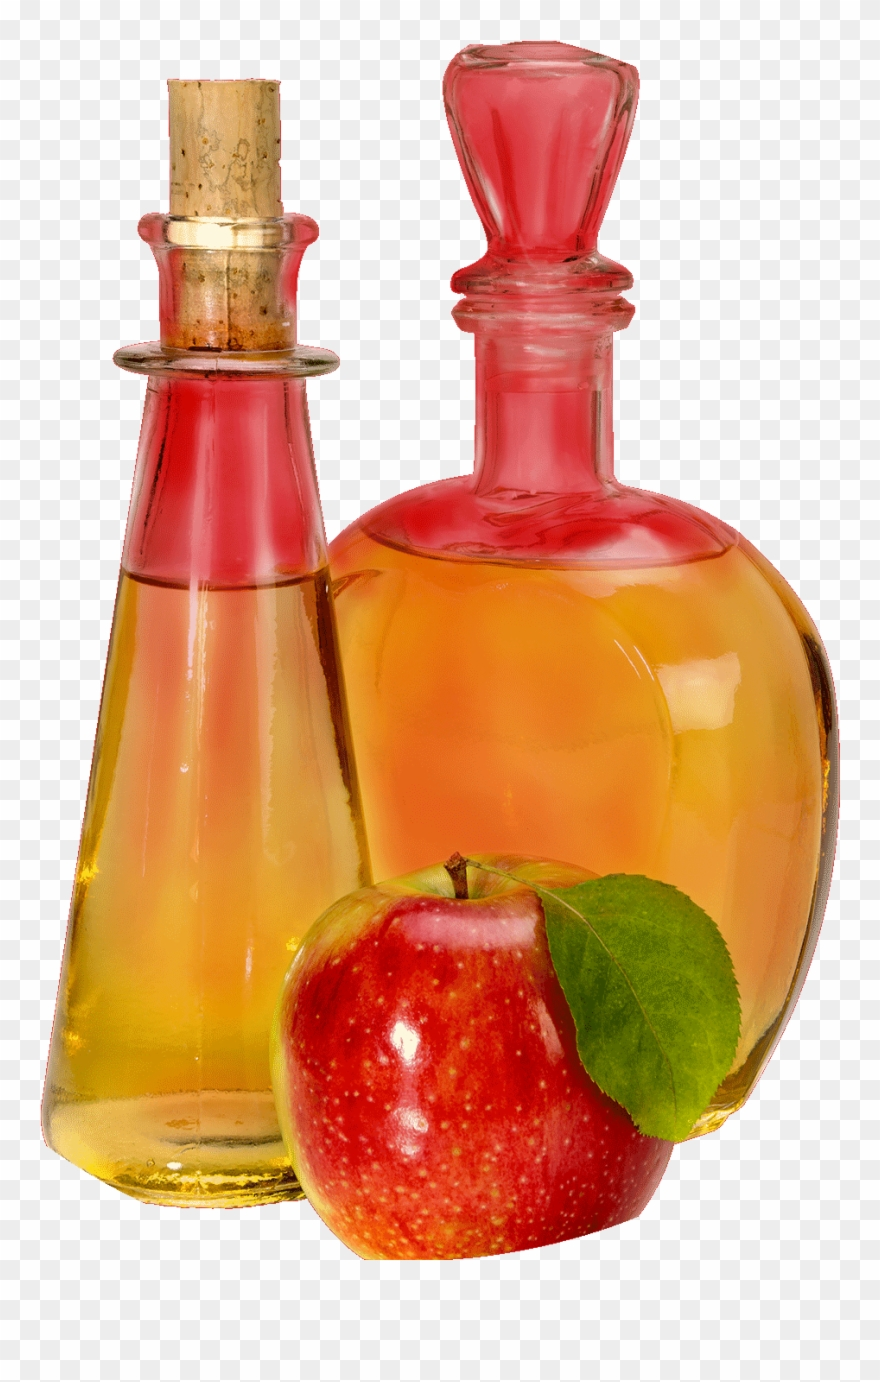 hight resolution of cleansing apple cider vinegar clipart